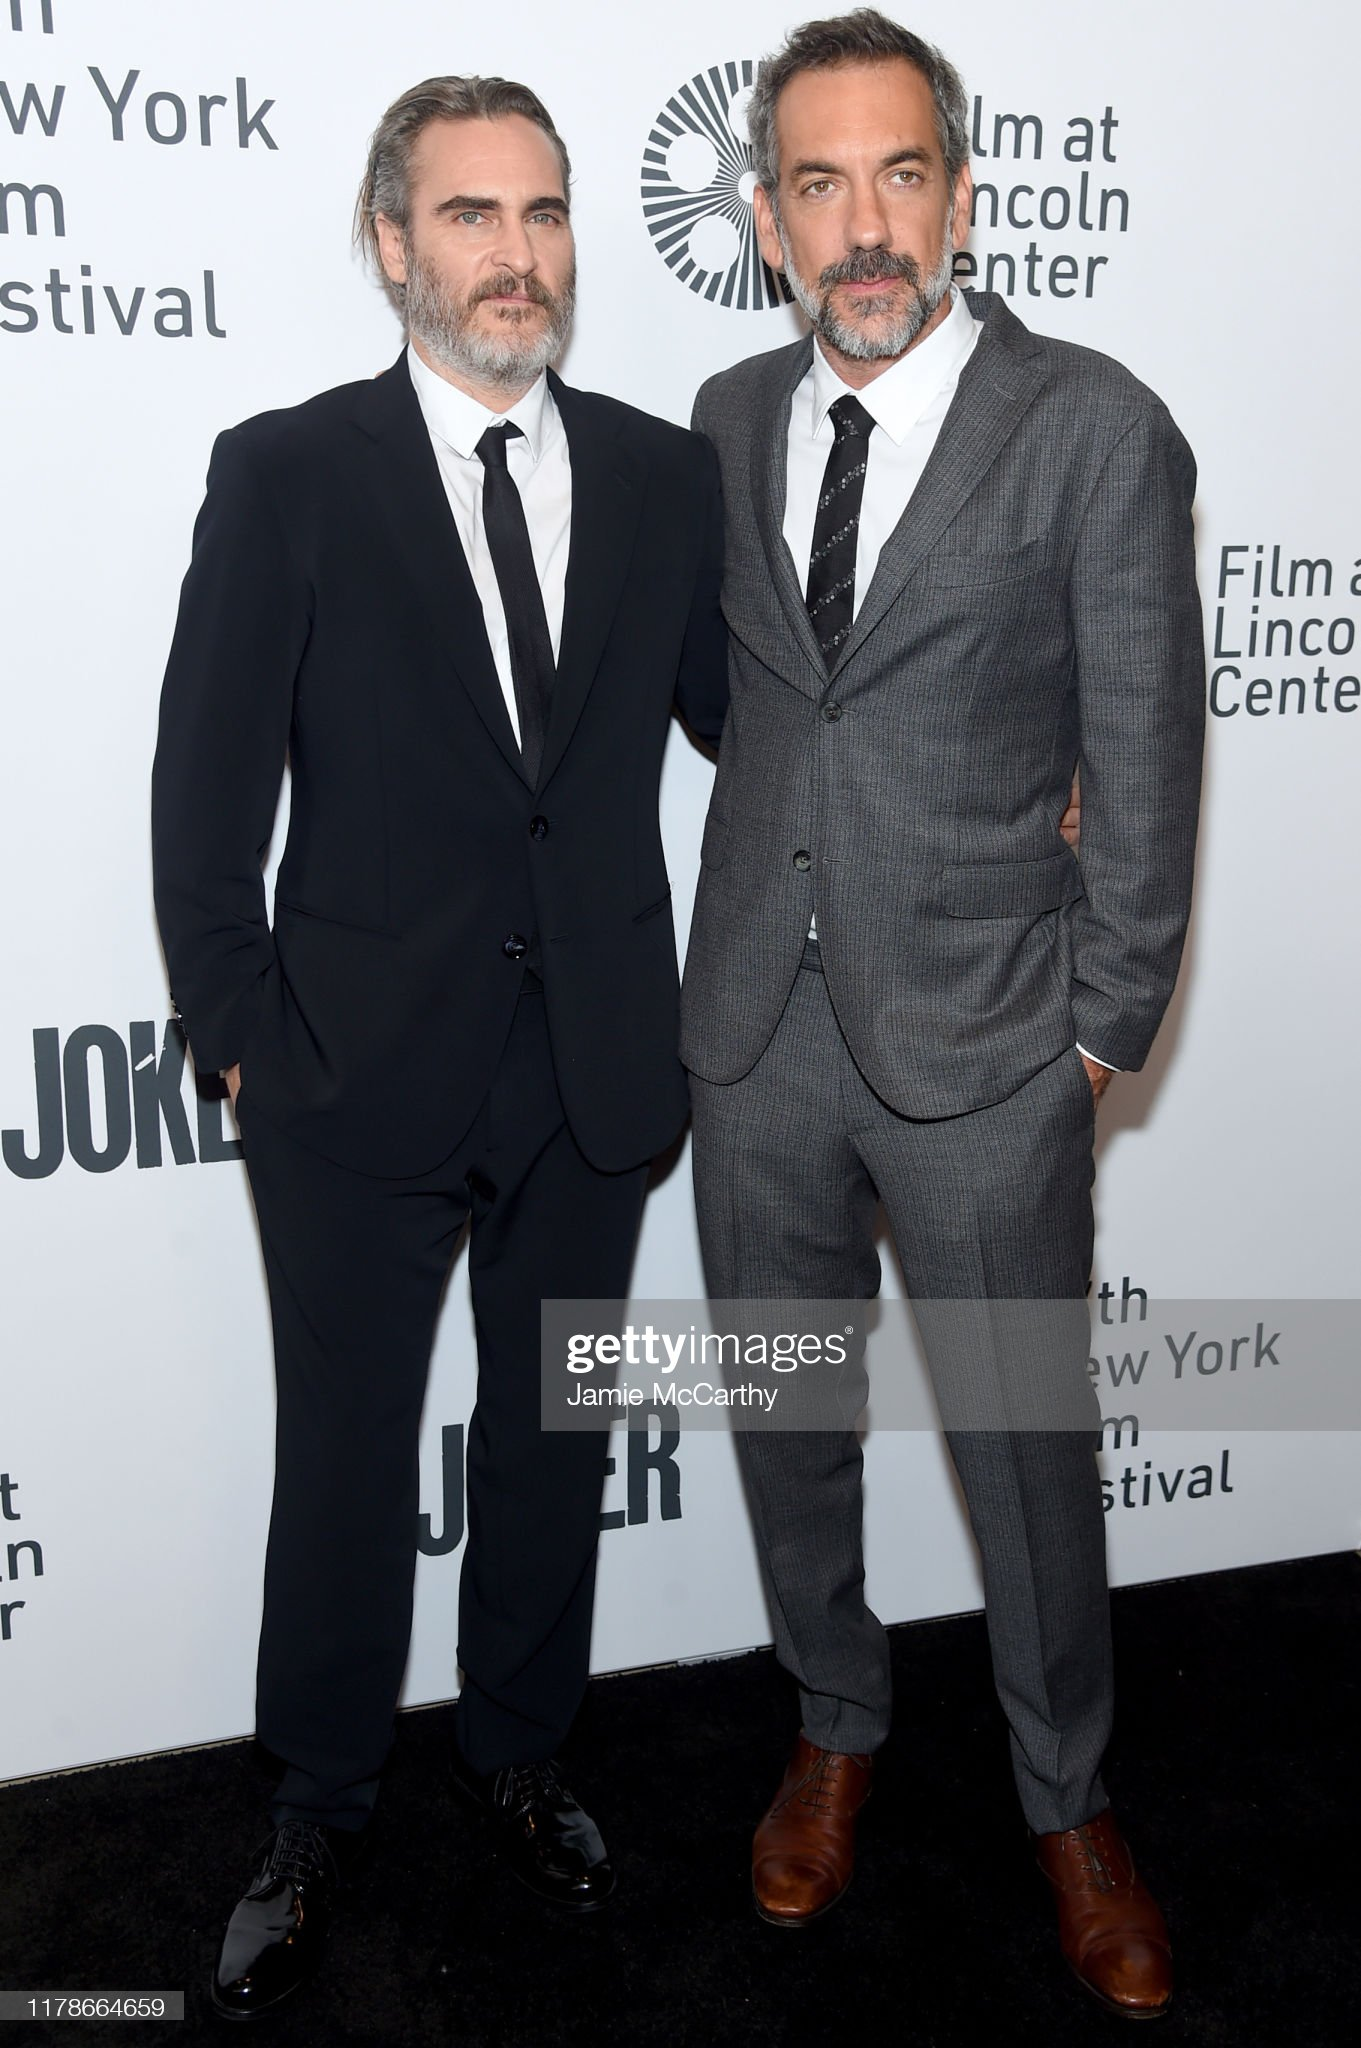 ¿Cuánto mide Joaquin Phoenix? - Altura - Real height Joaquin-phoenix-and-todd-phillips-attend-the-57th-new-york-film-at-picture-id1178664659?s=2048x2048